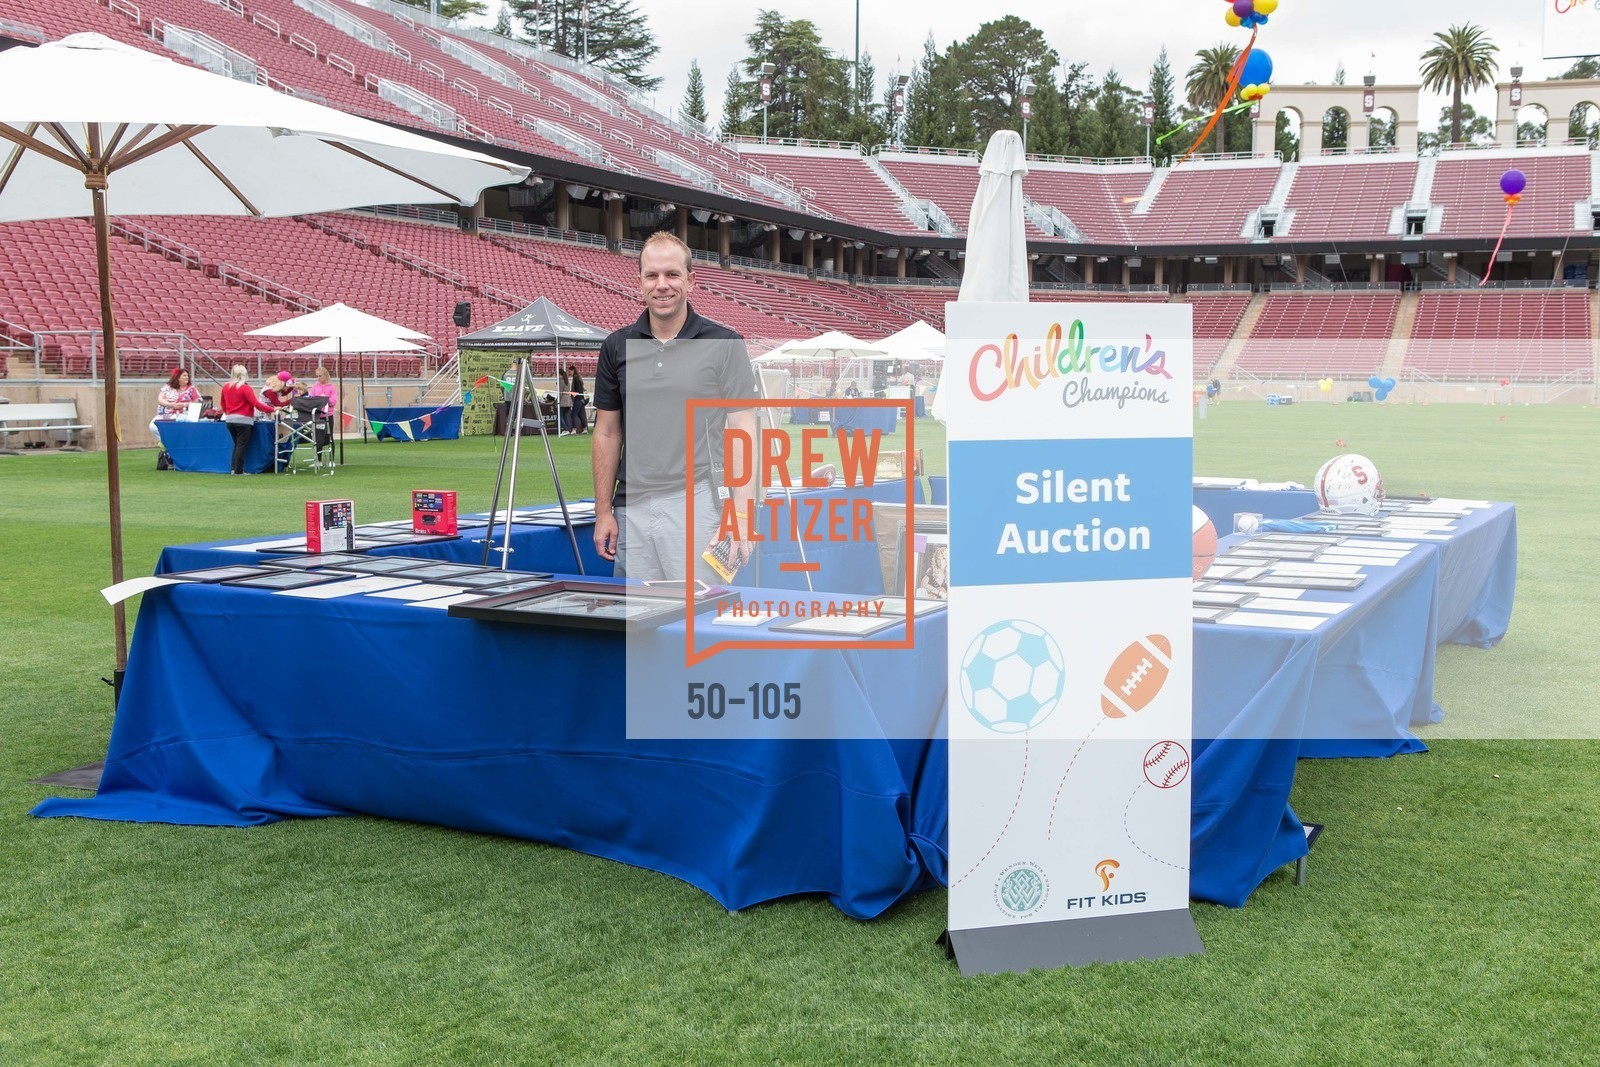 atmosphere, Children's Champions, May 16th, 2015, Photo,Drew Altizer, Drew Altizer Photography, full-service agency, private events, San Francisco photographer, photographer california